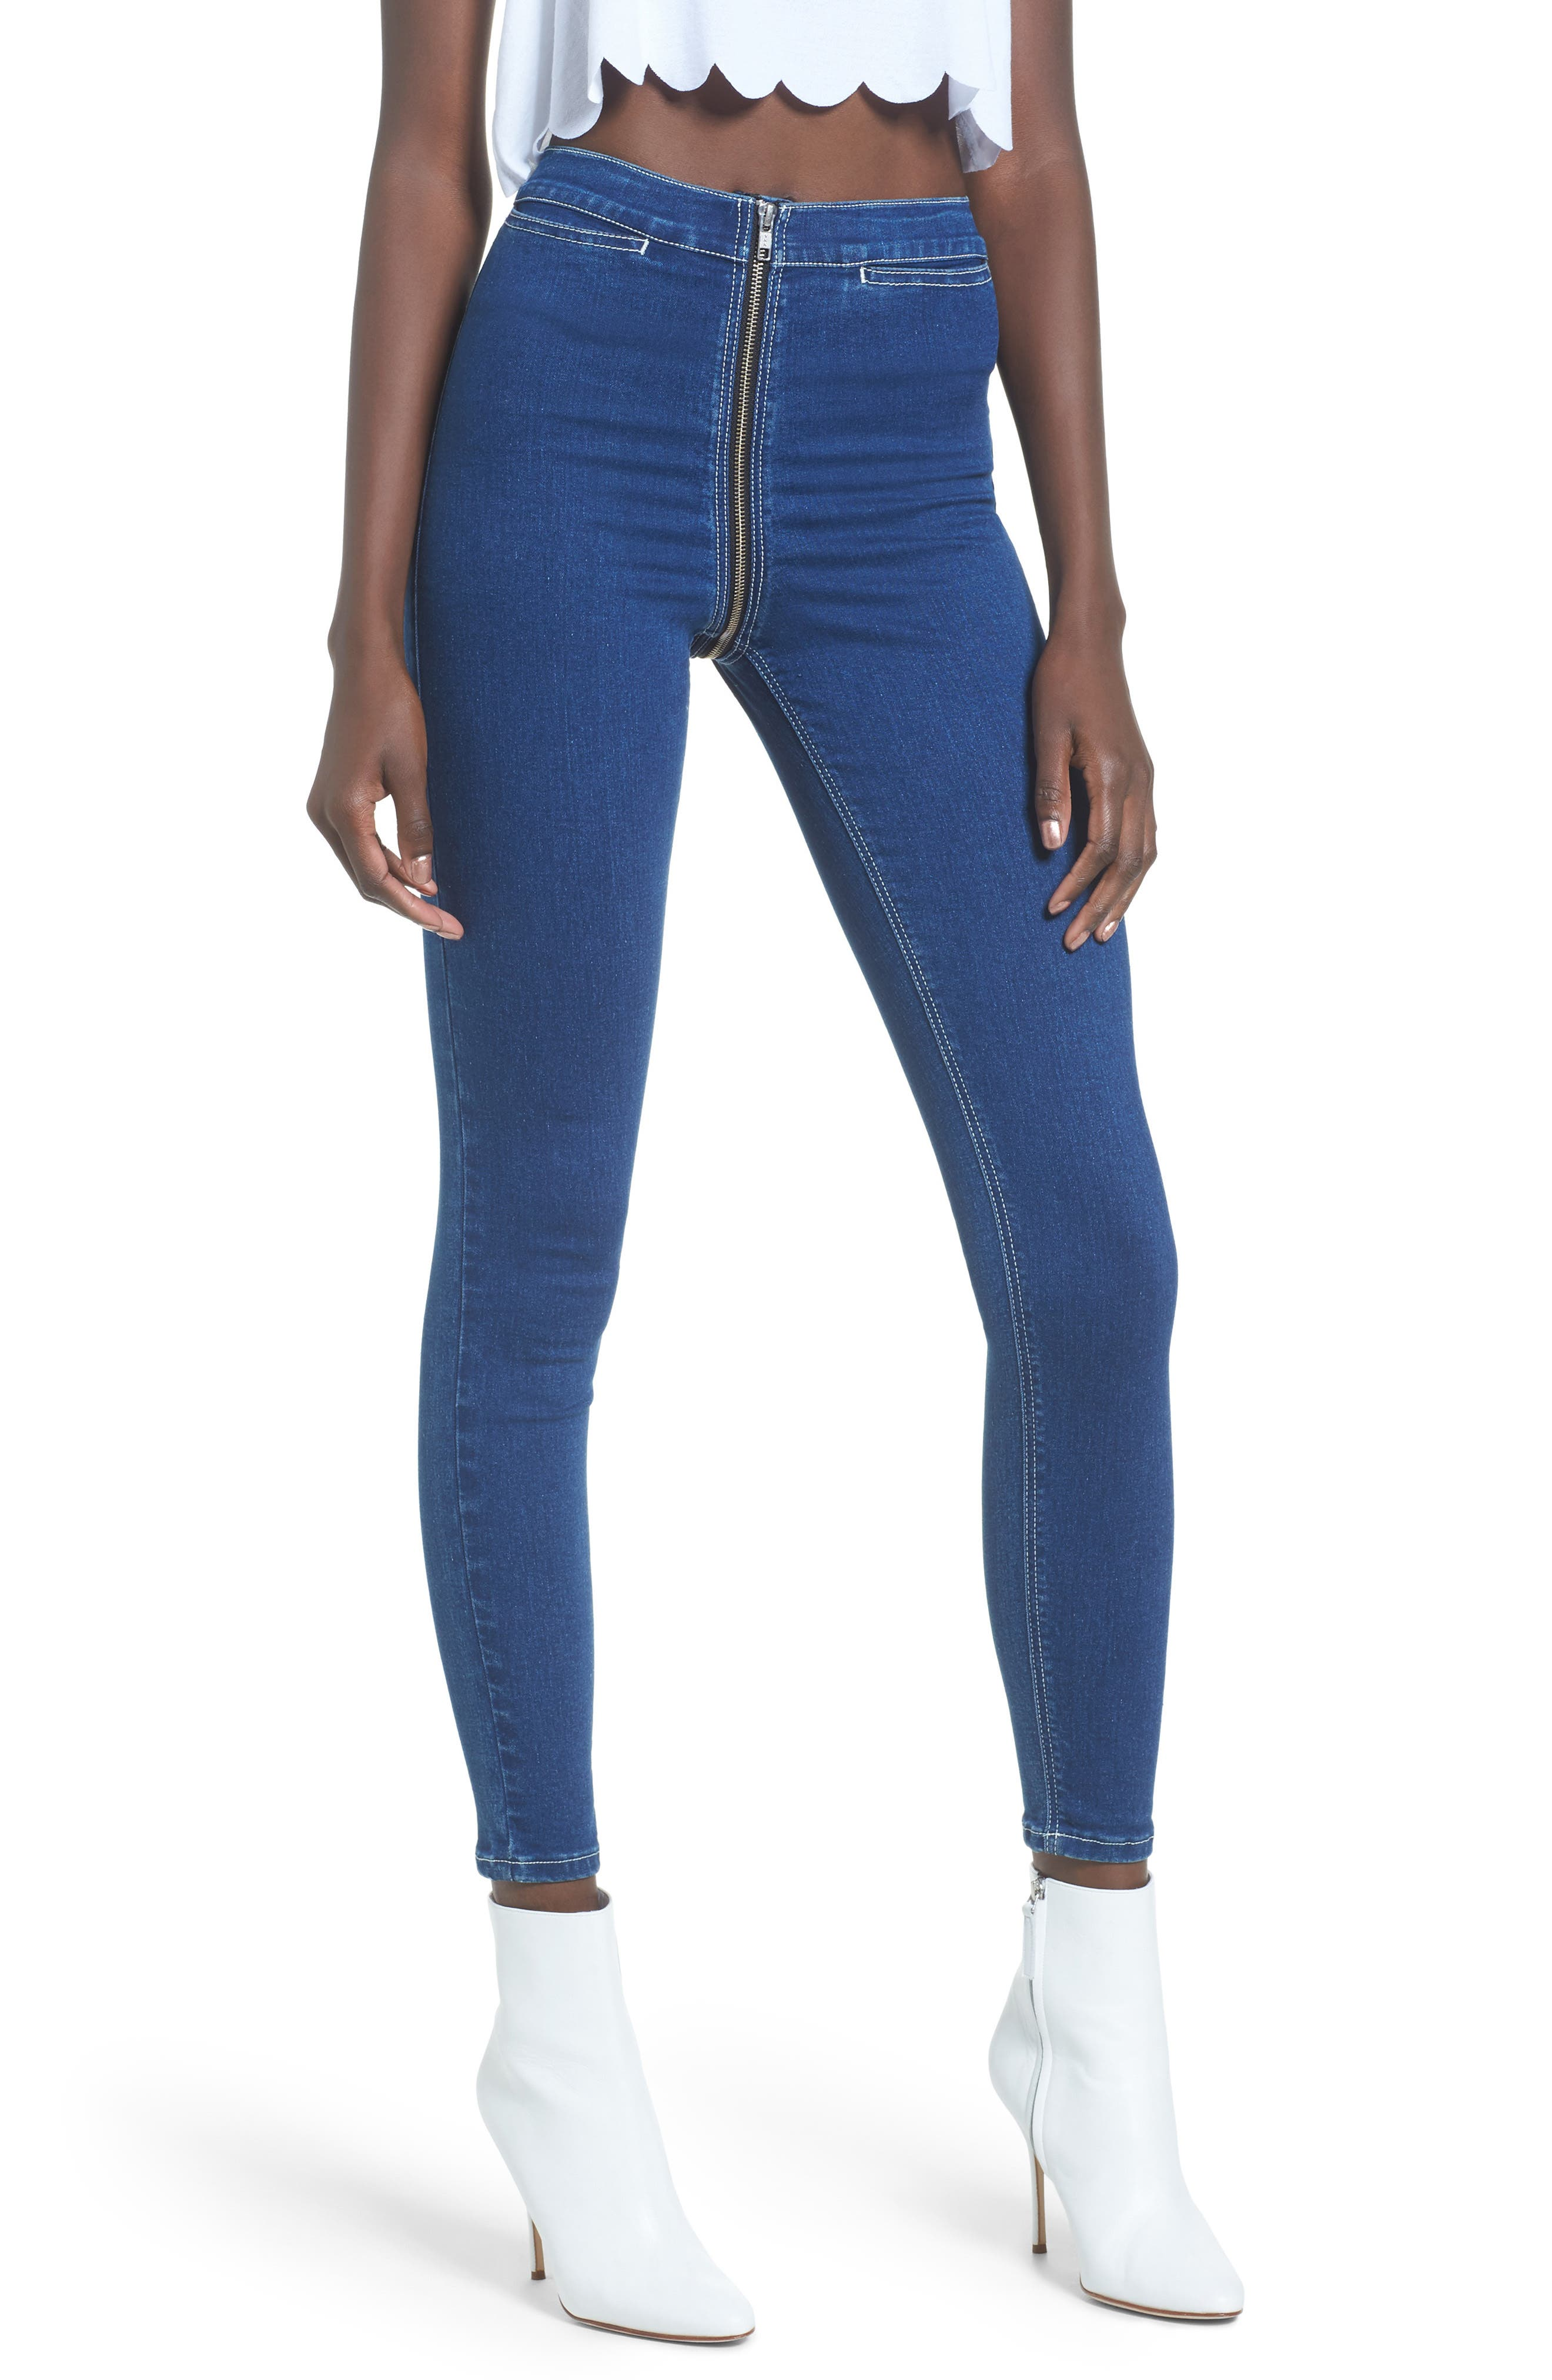 Topshop Joni Zip Around High Rise Super Skinny Jeans